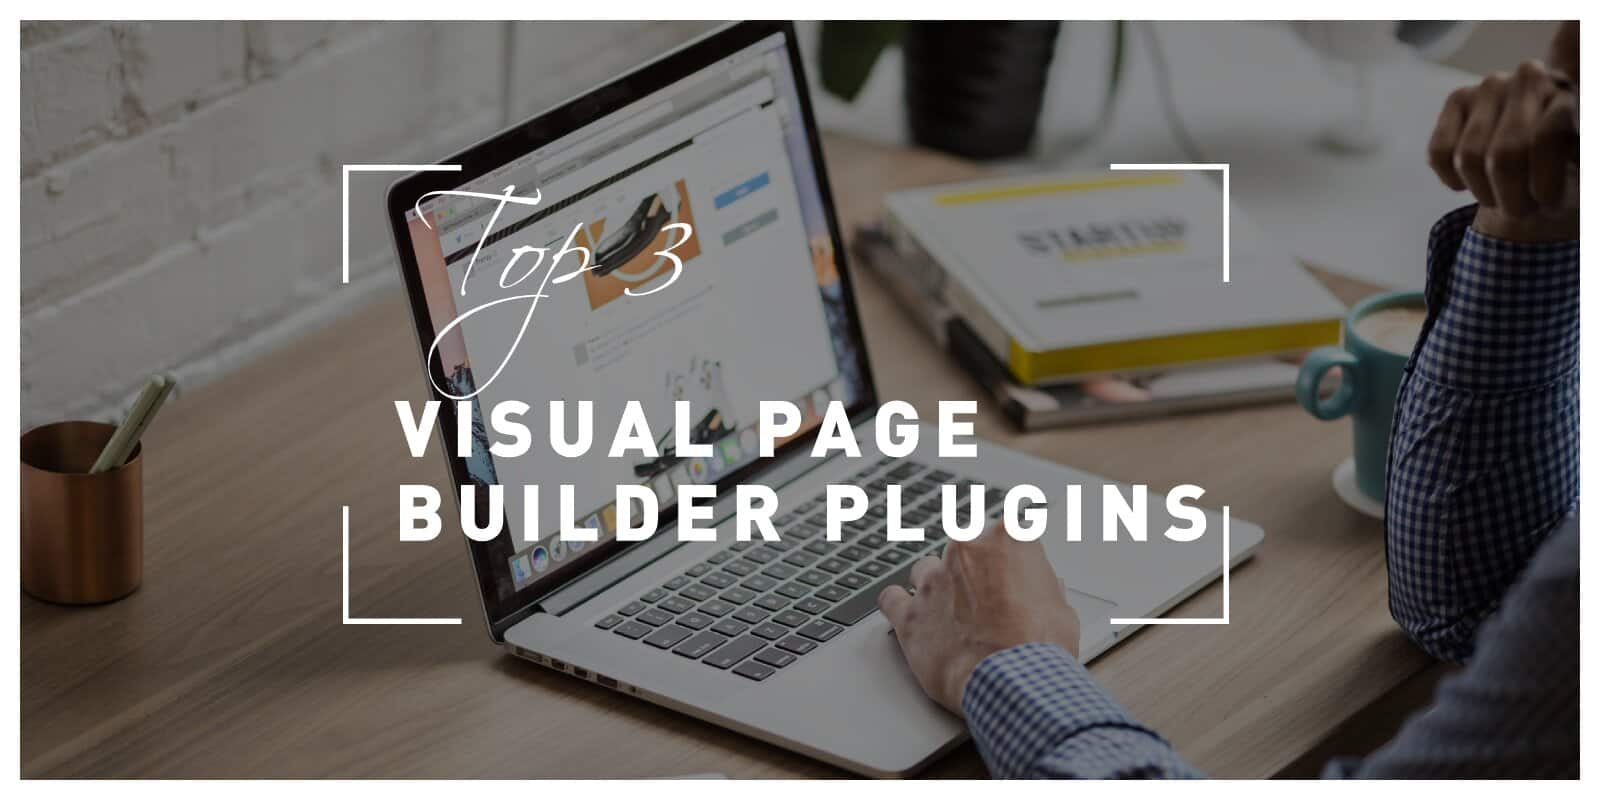 Visual Page Builder Plugins